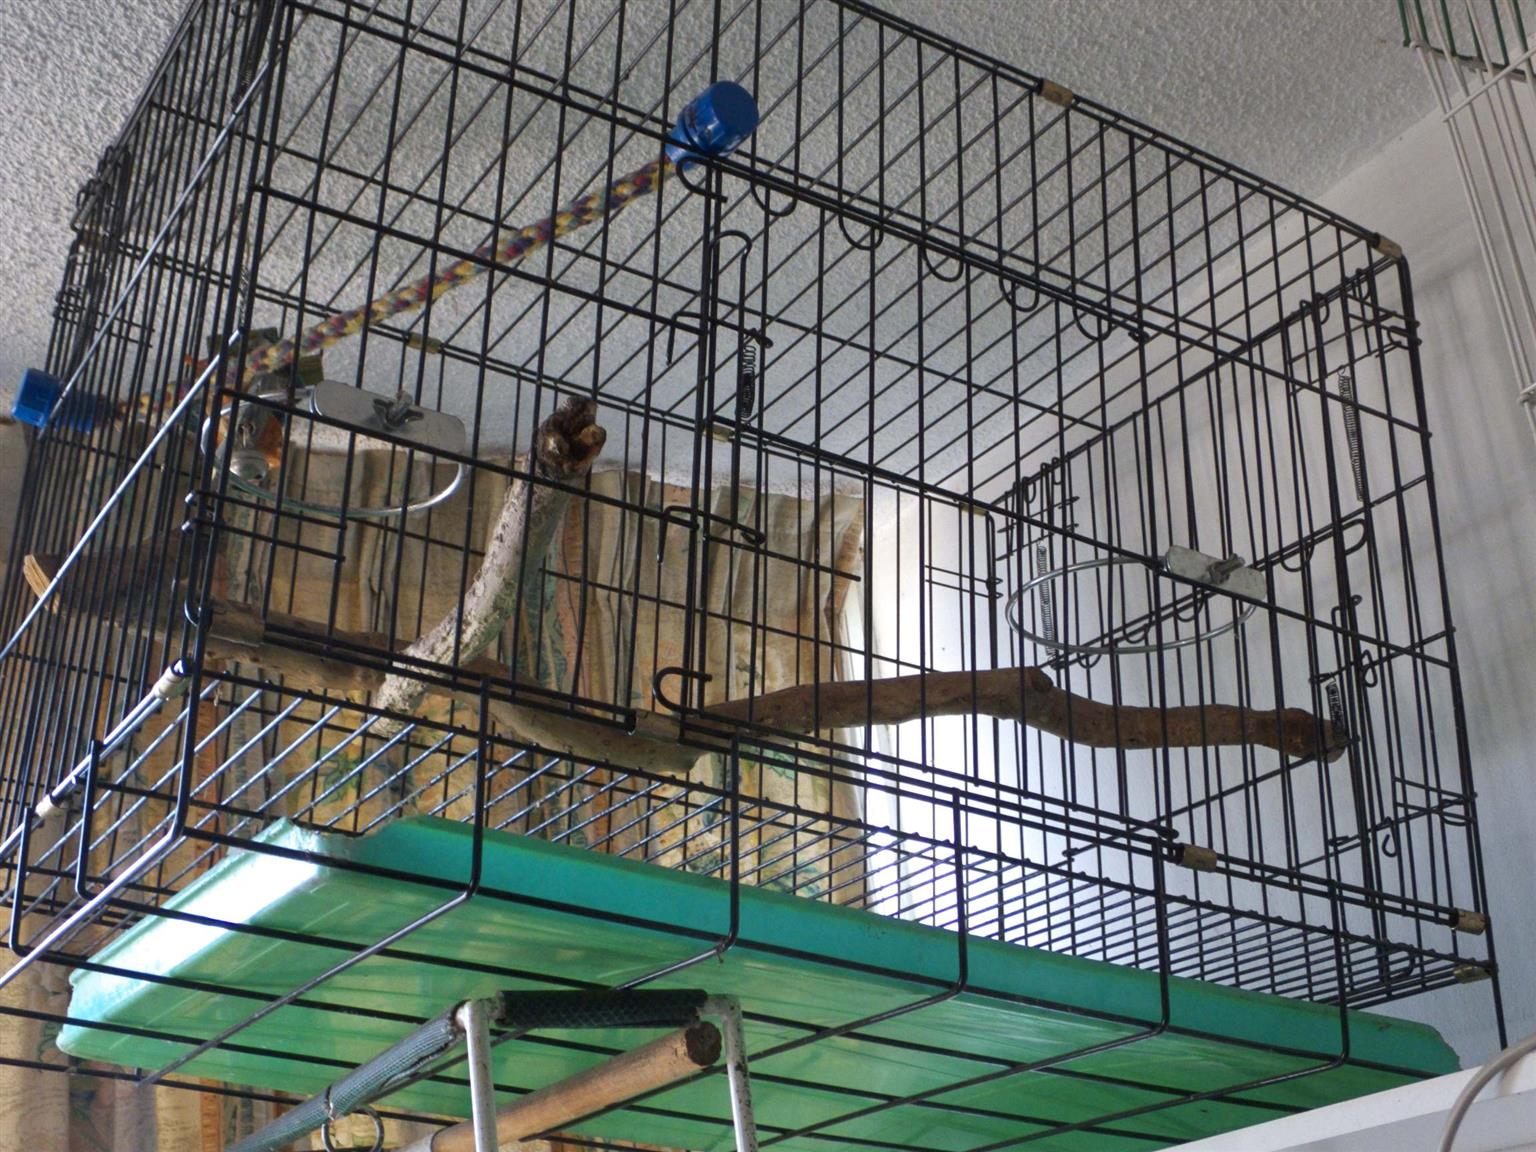 Bird cage, fold up, sells for R2000 at the pet shops